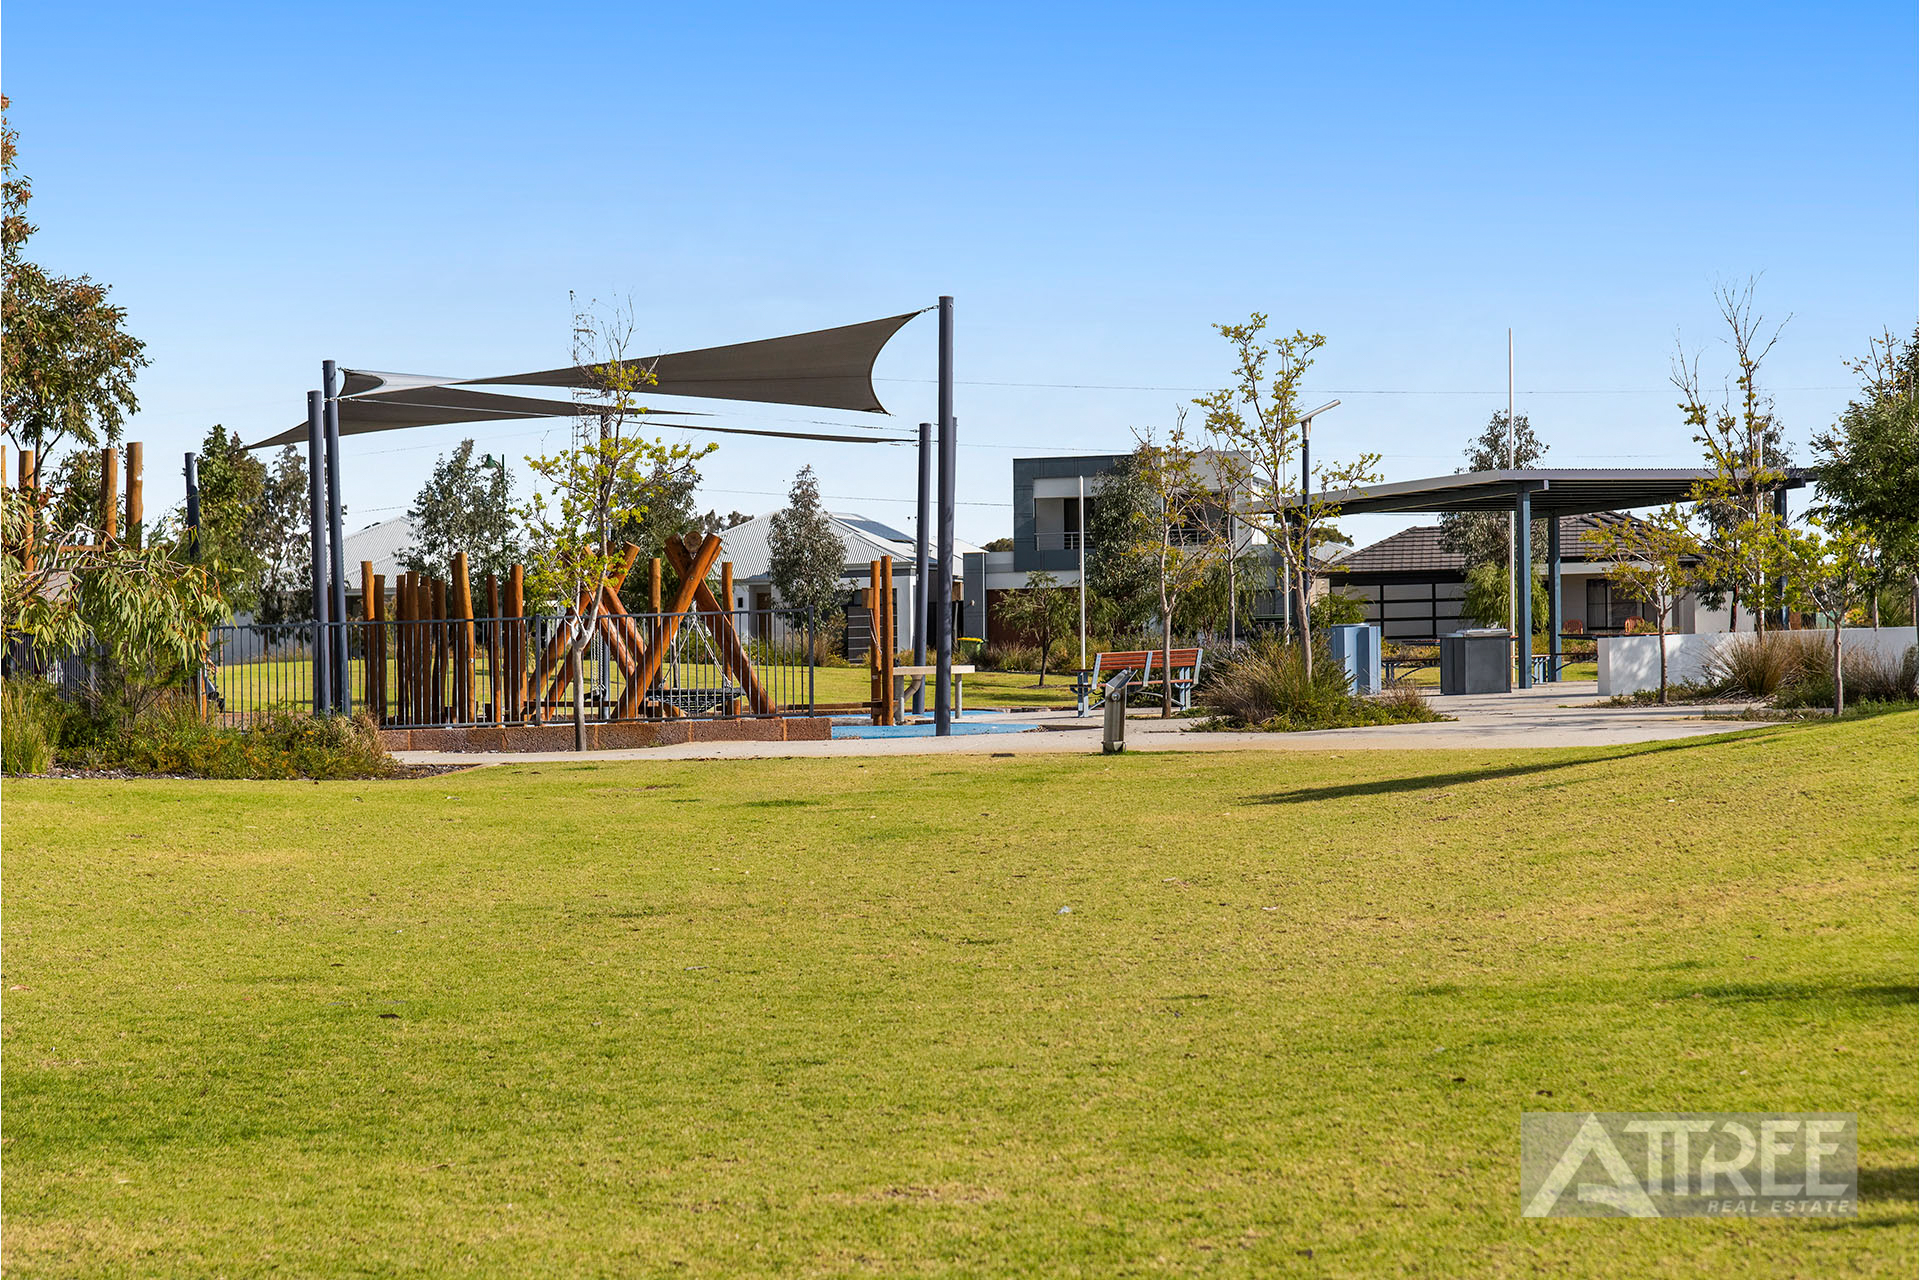 Property for sale in PIARA WATERS, 14 Boranup Rise : Attree Real Estate